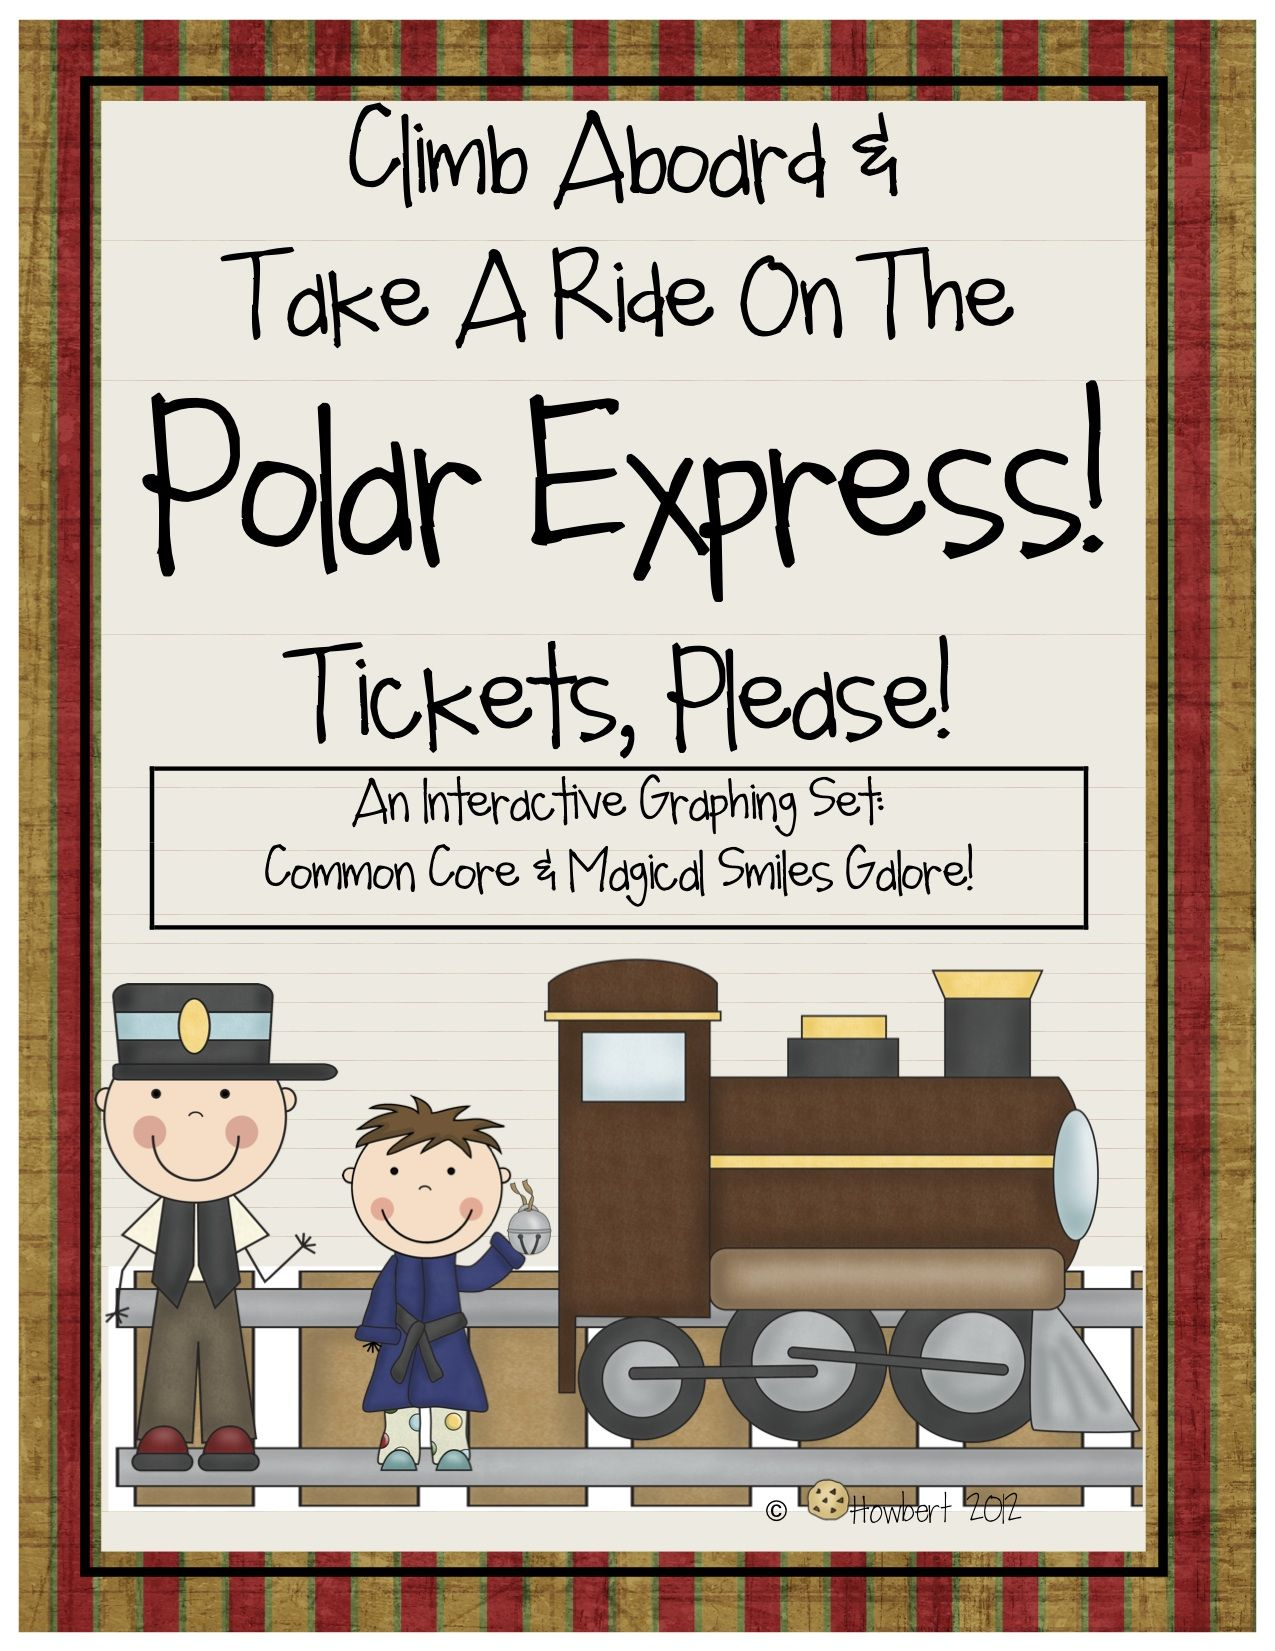 All Aboard For Graphing The Polar Express